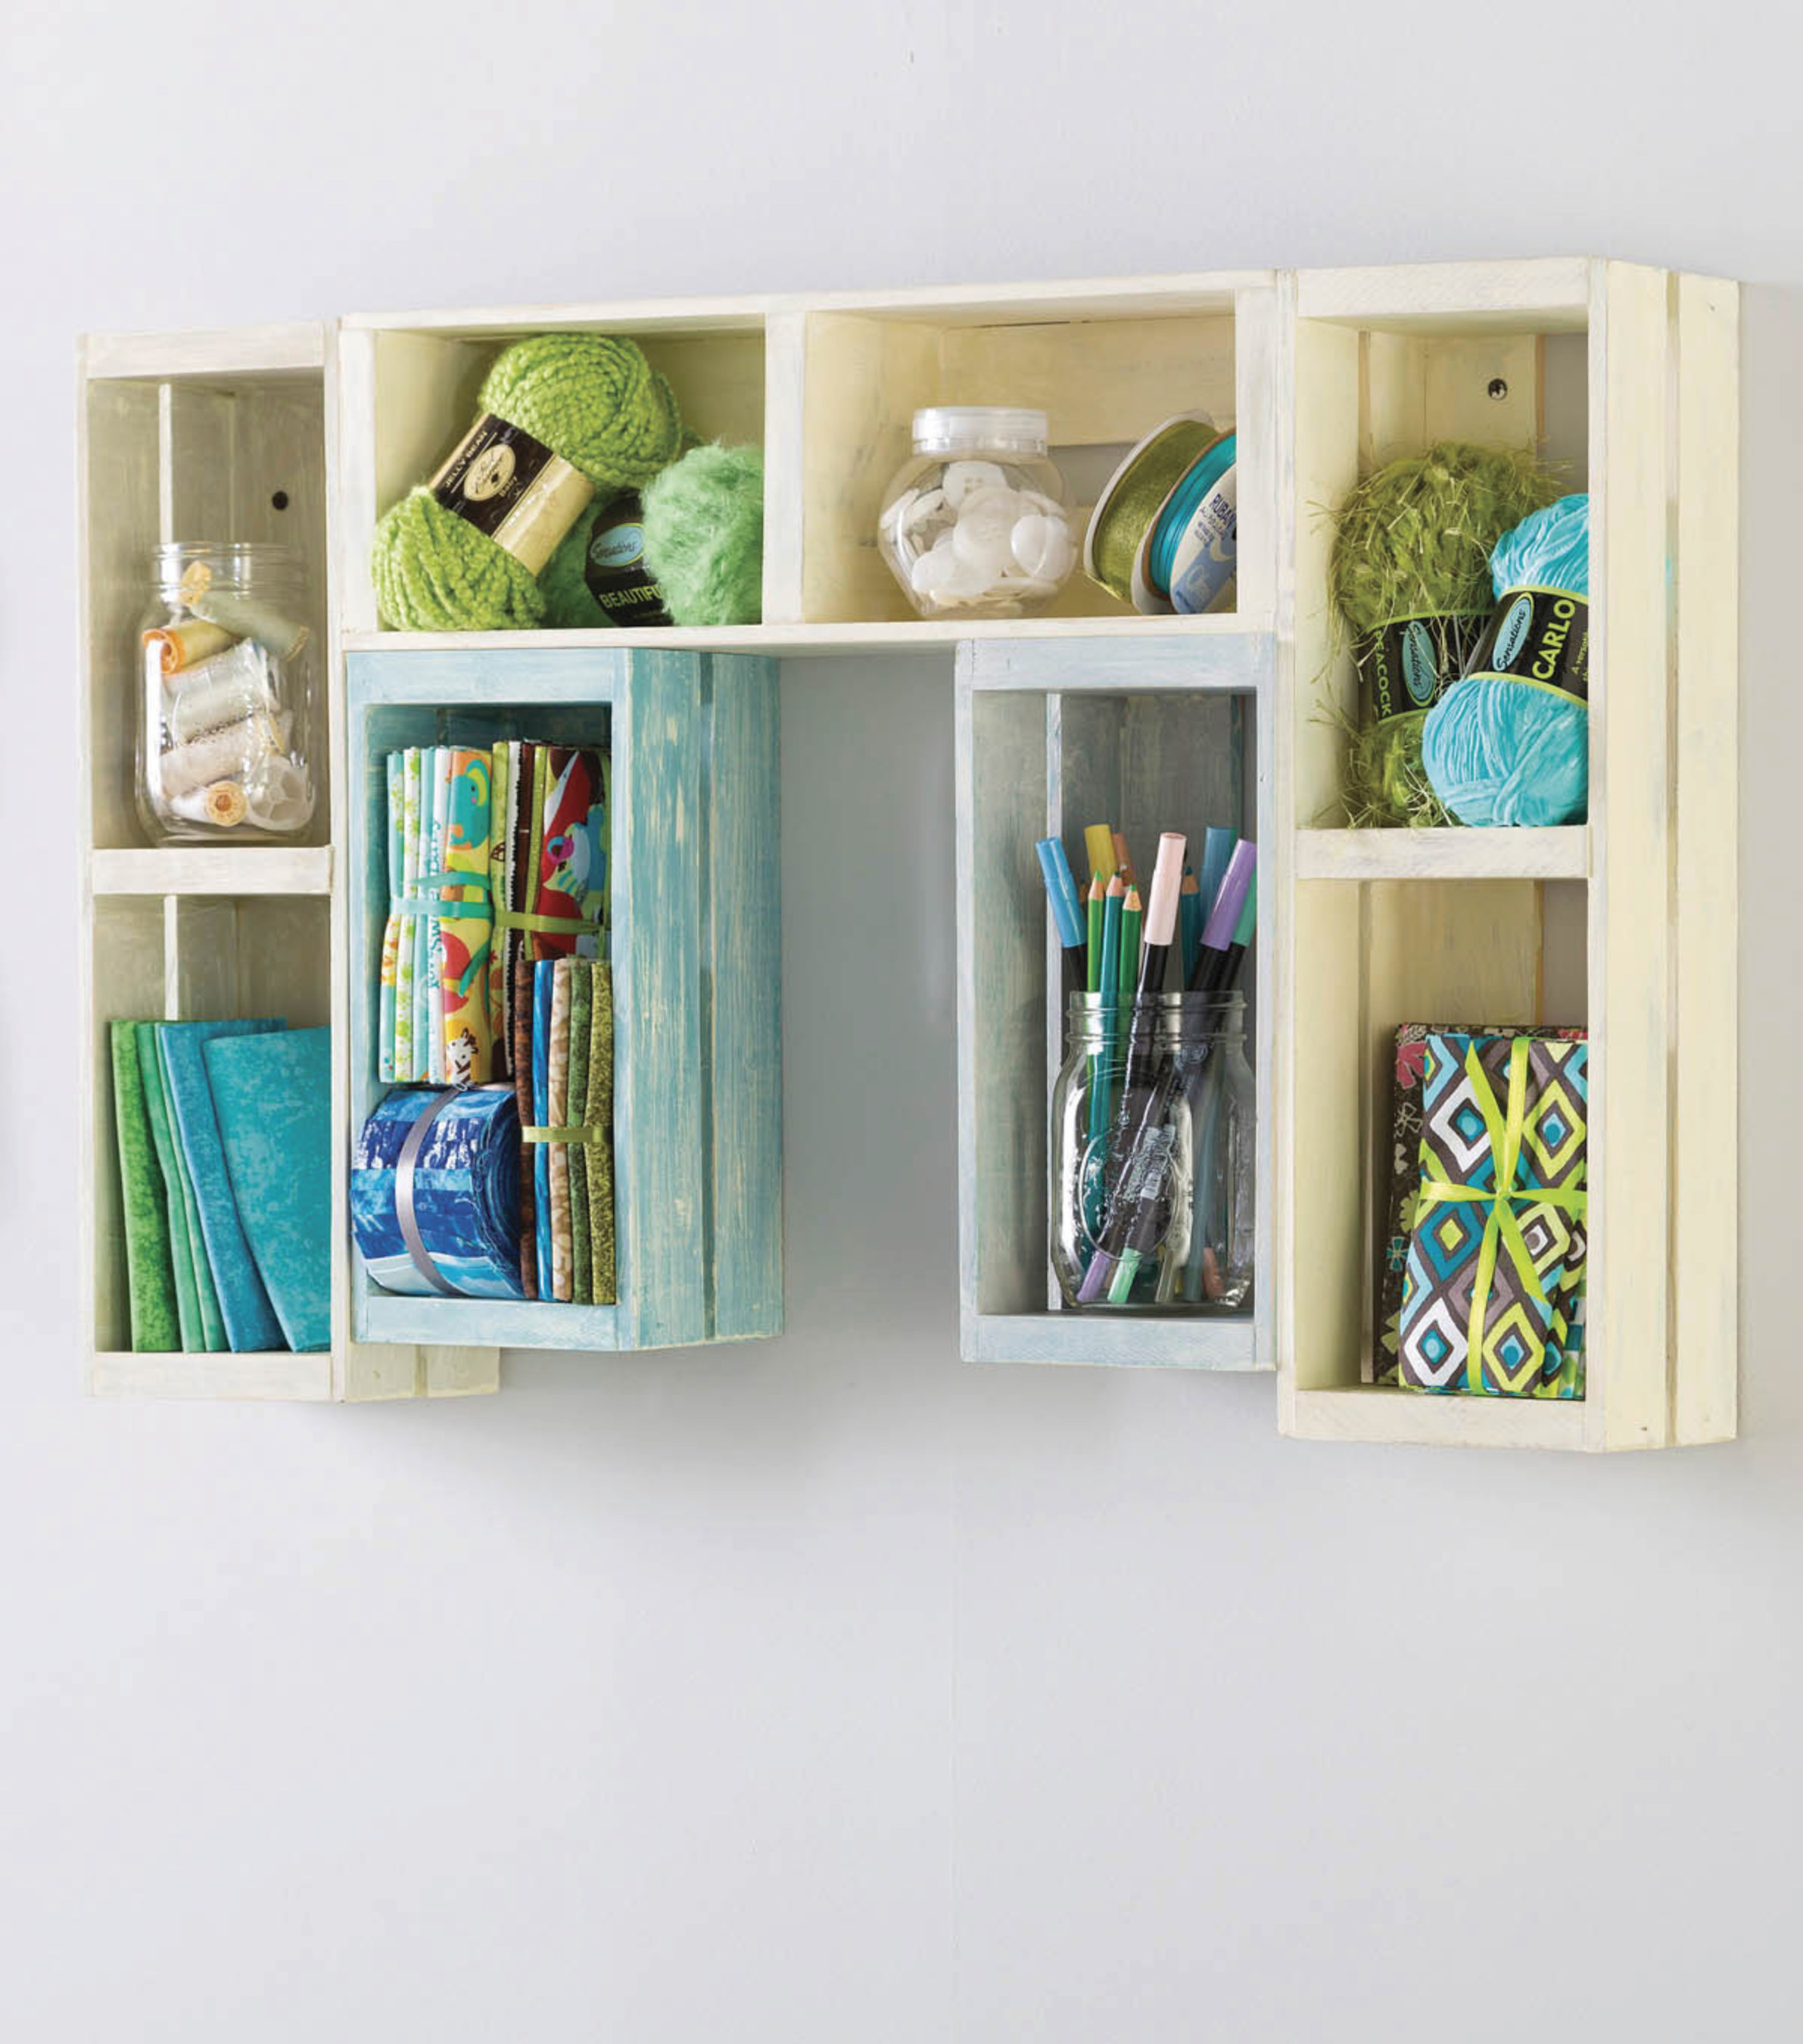 Creative Ways to Add Order to Your Home